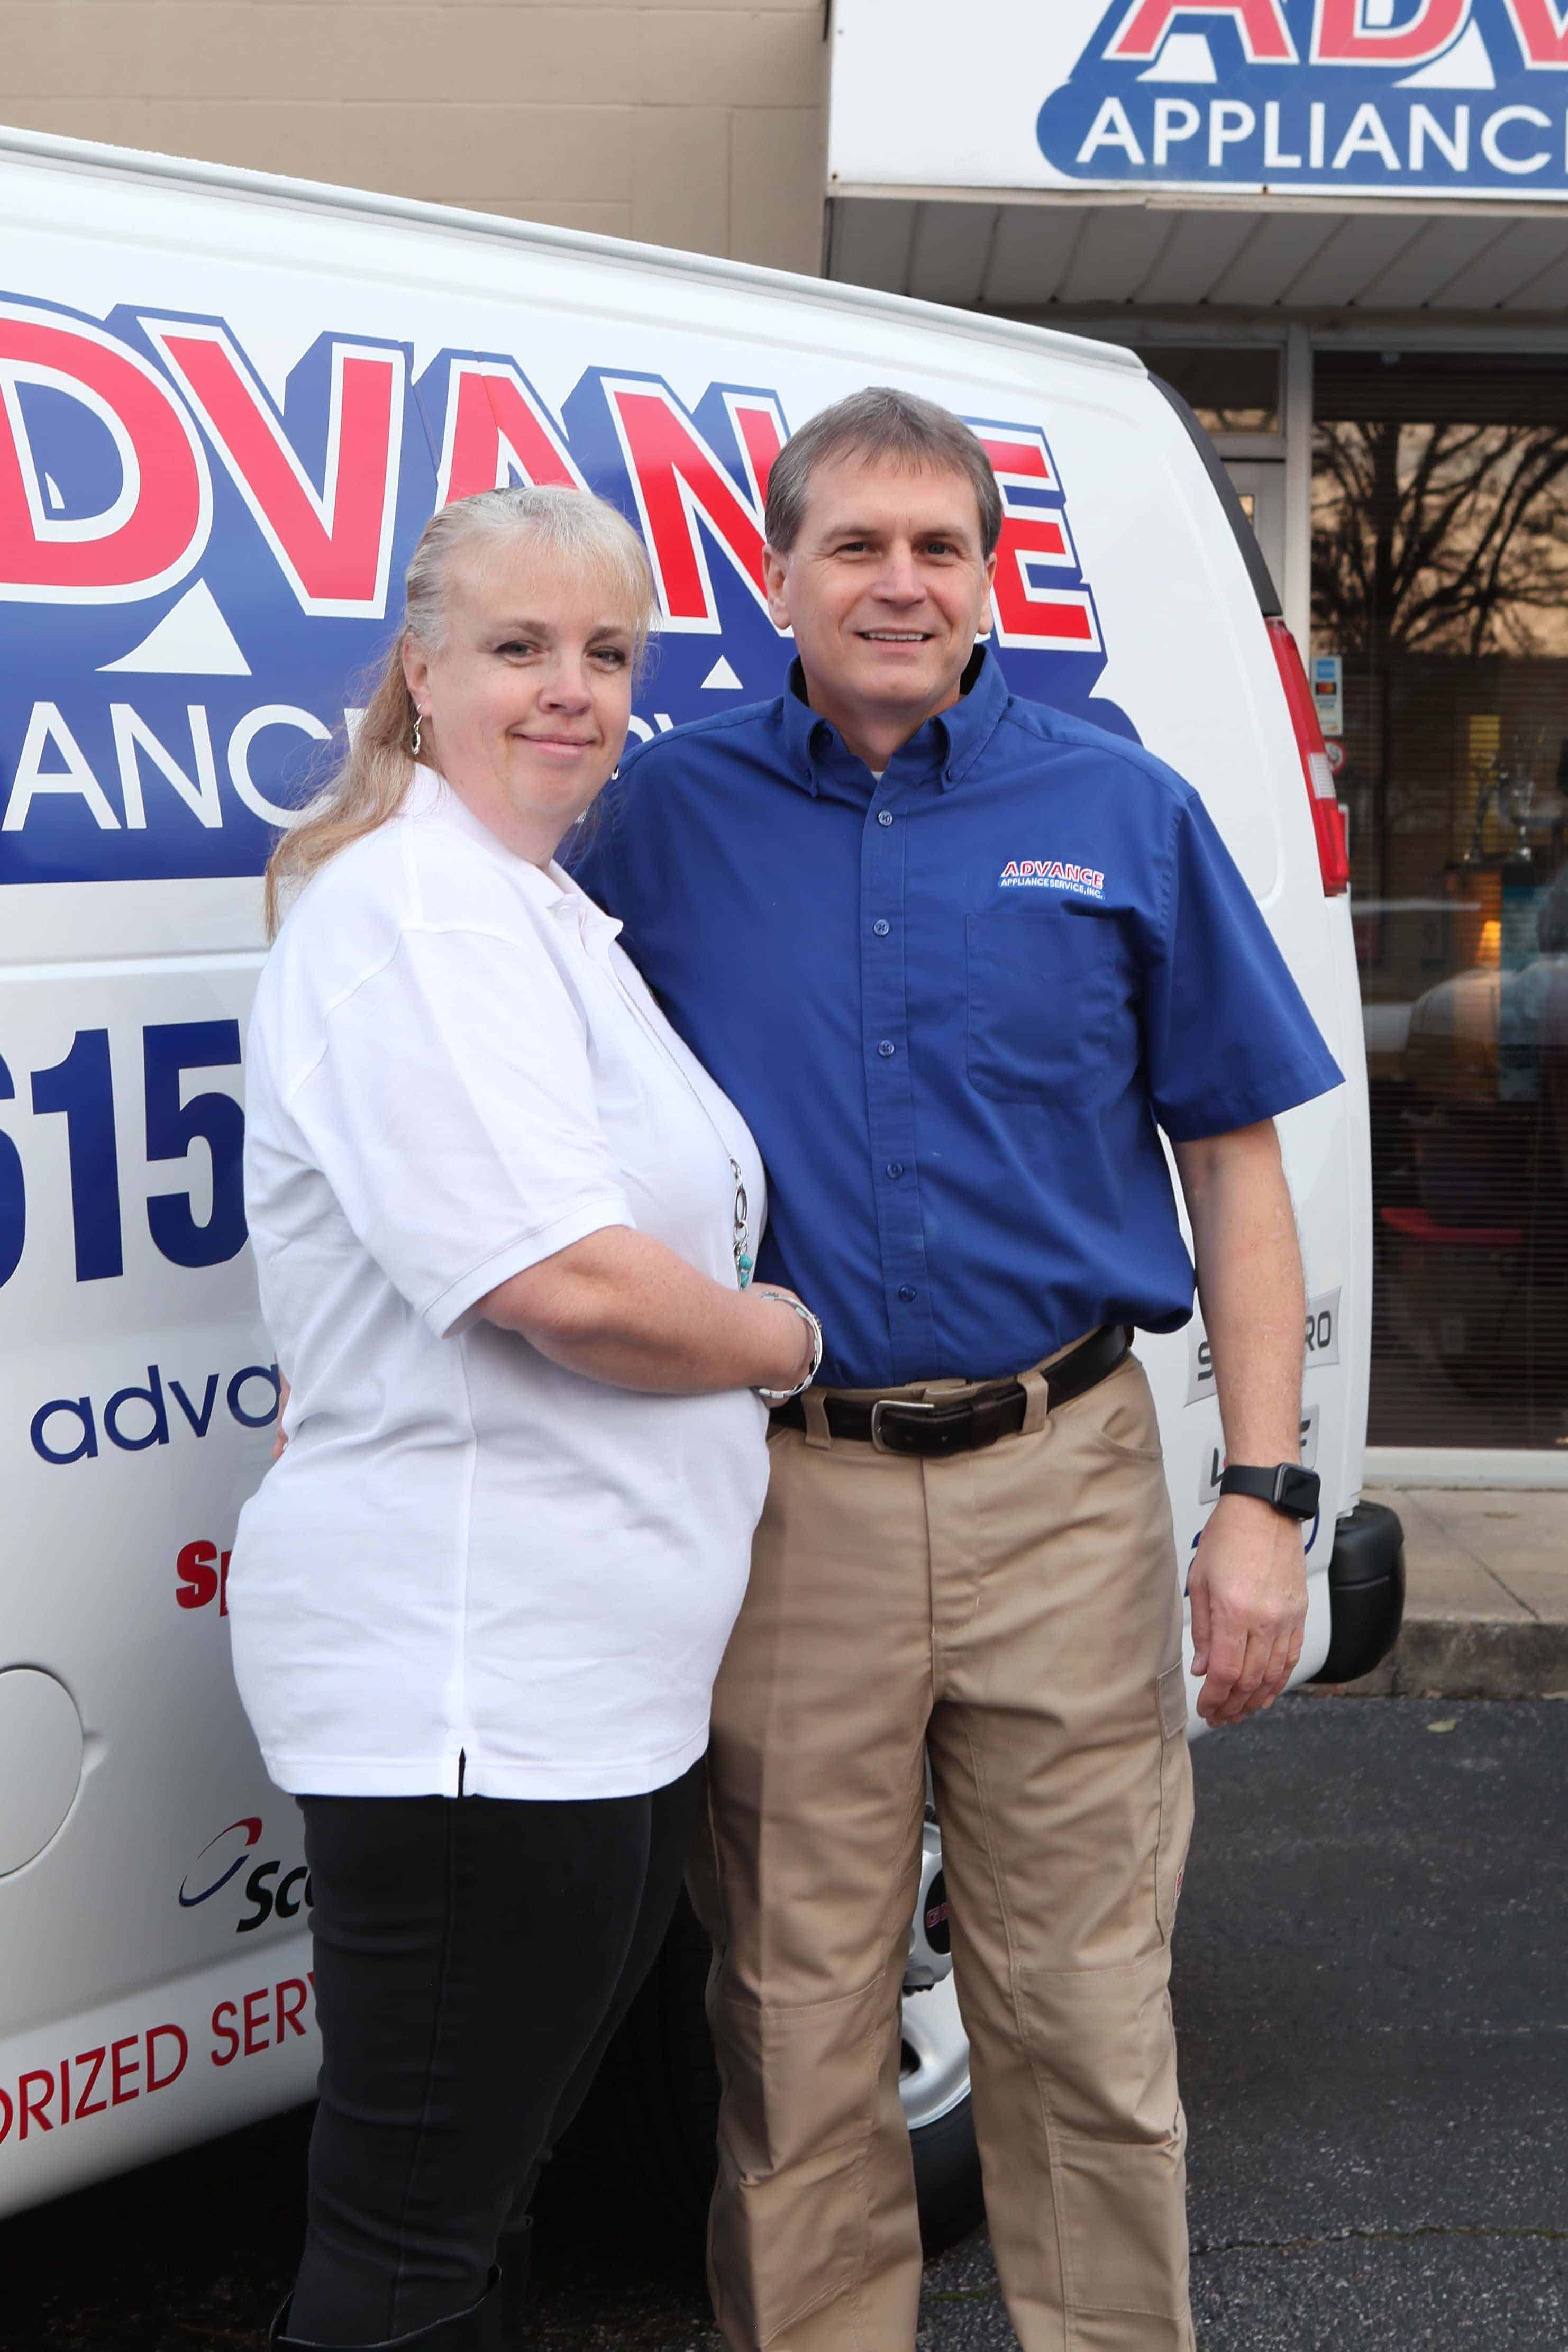 doug advance appliance repair nashville